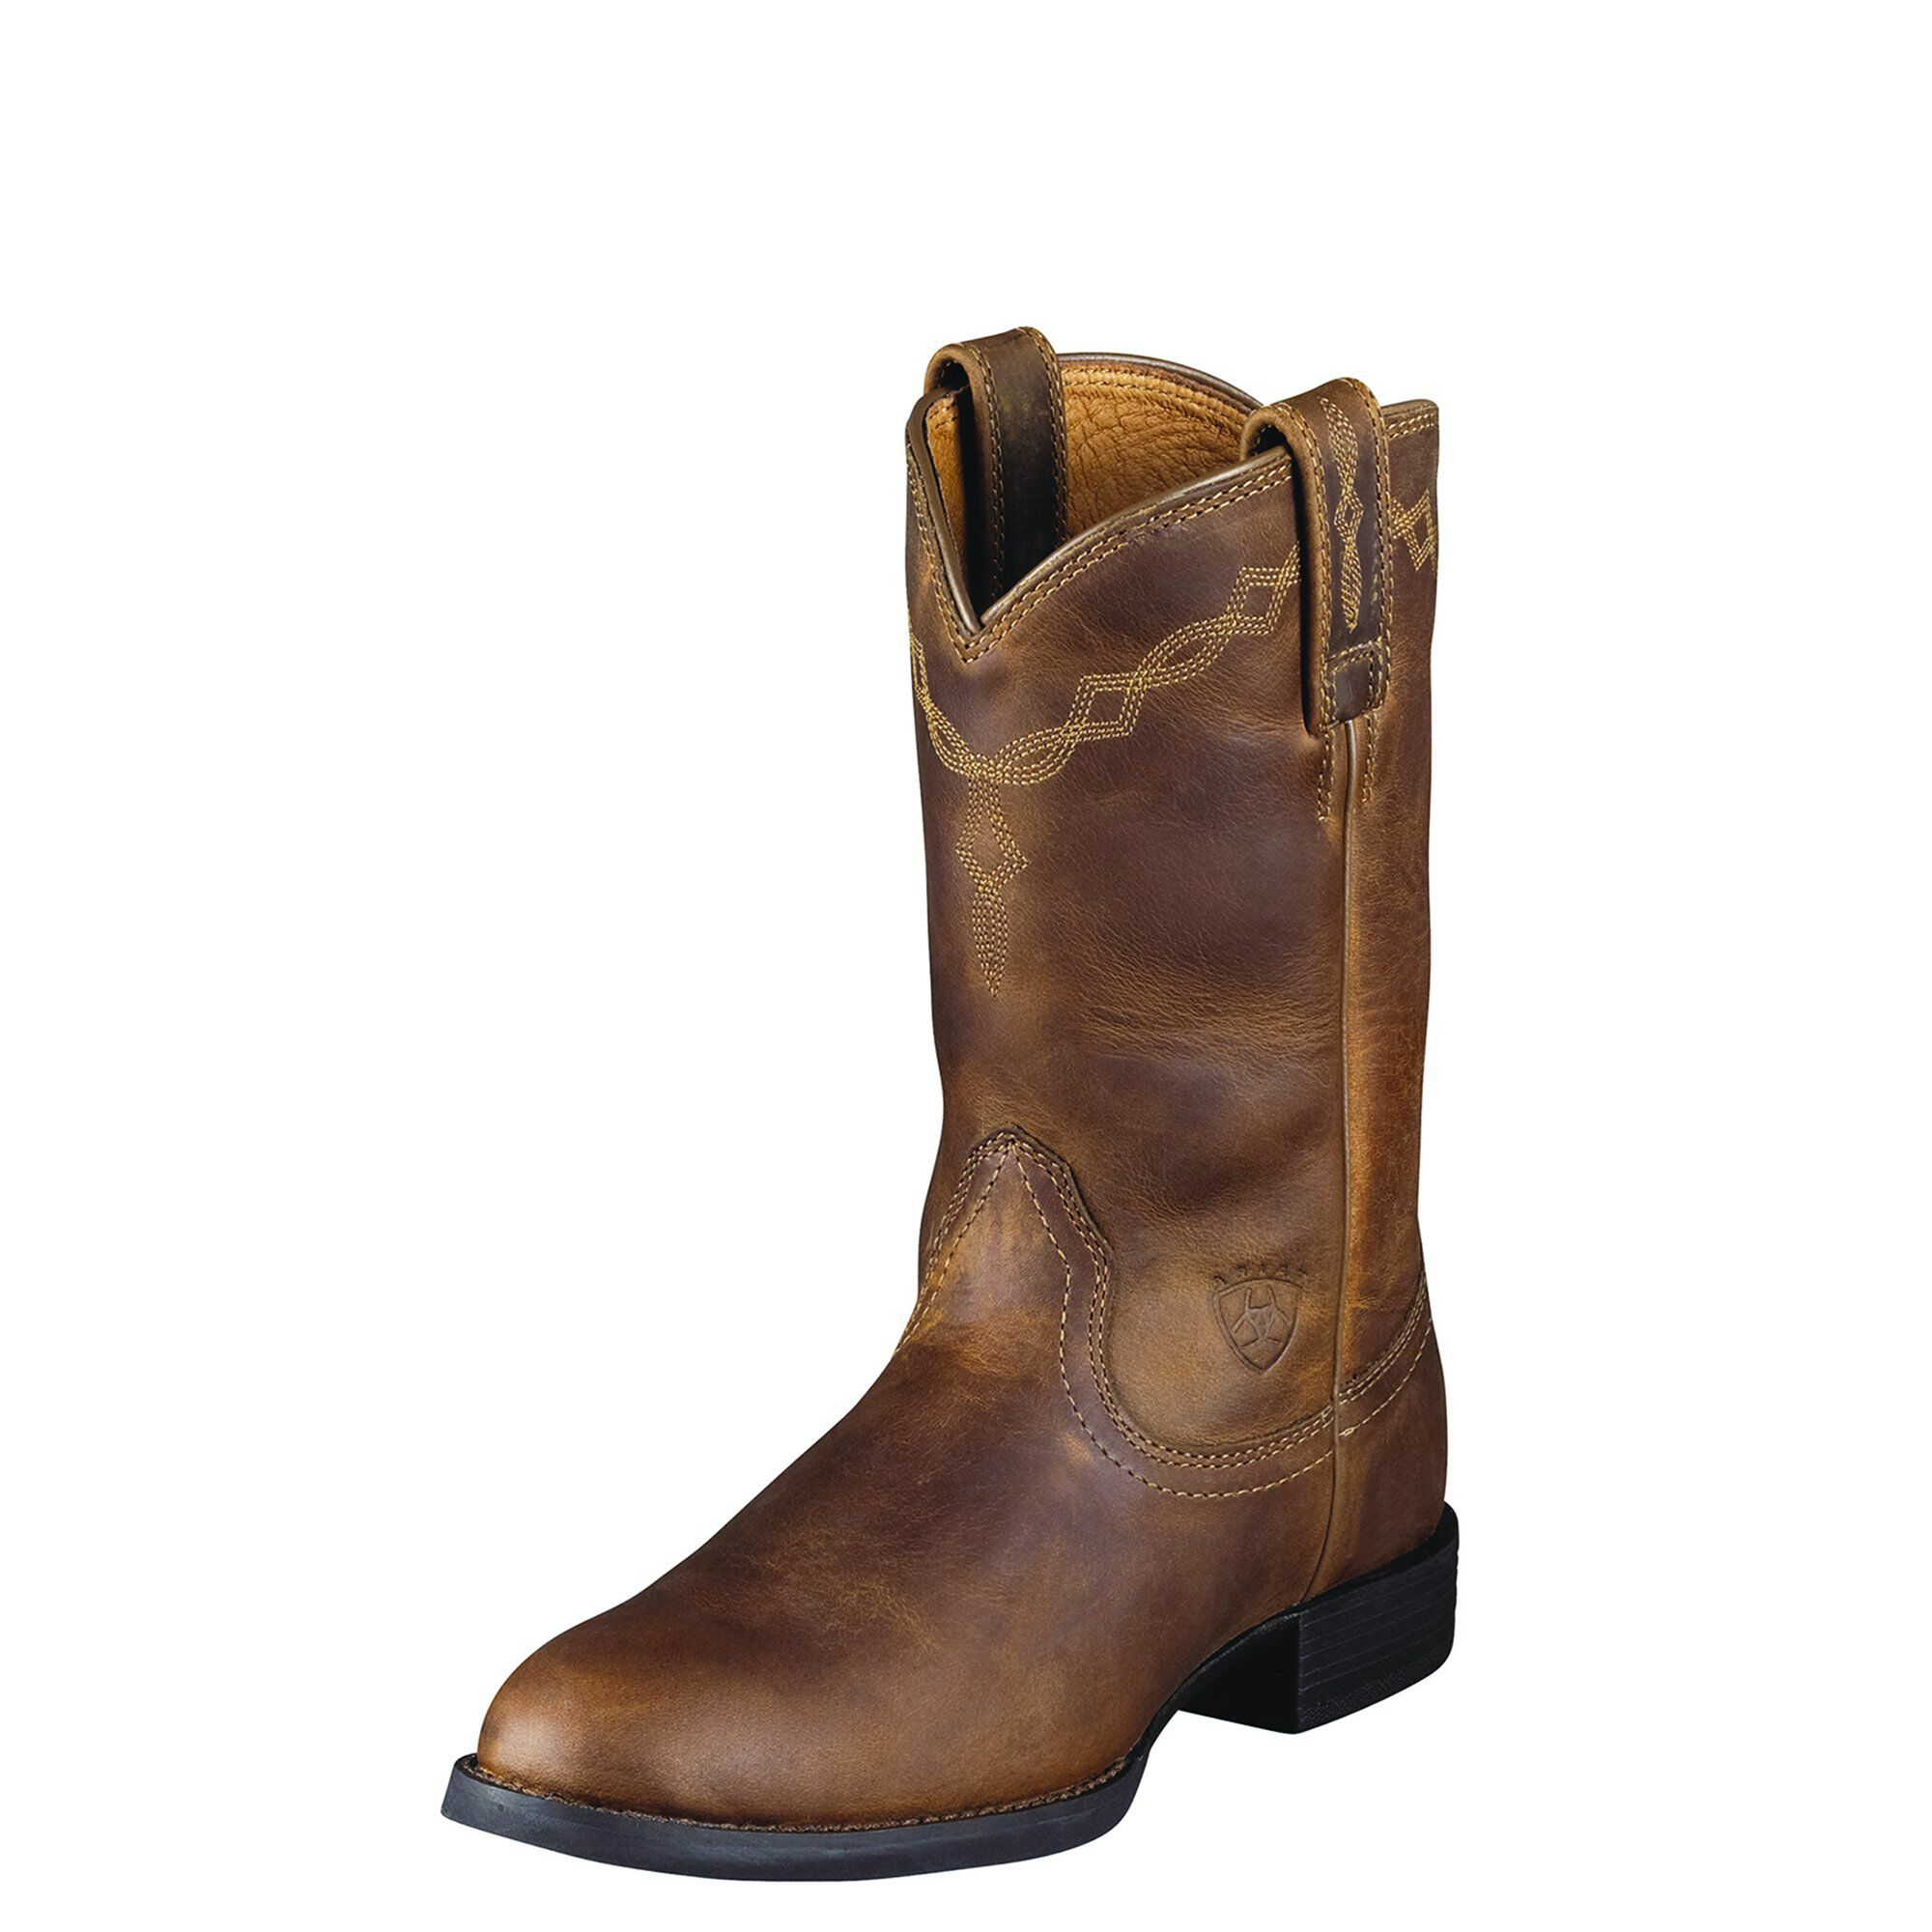 Women's Heritage Roper Western Boots in Distressed Brown Leather by Ariat